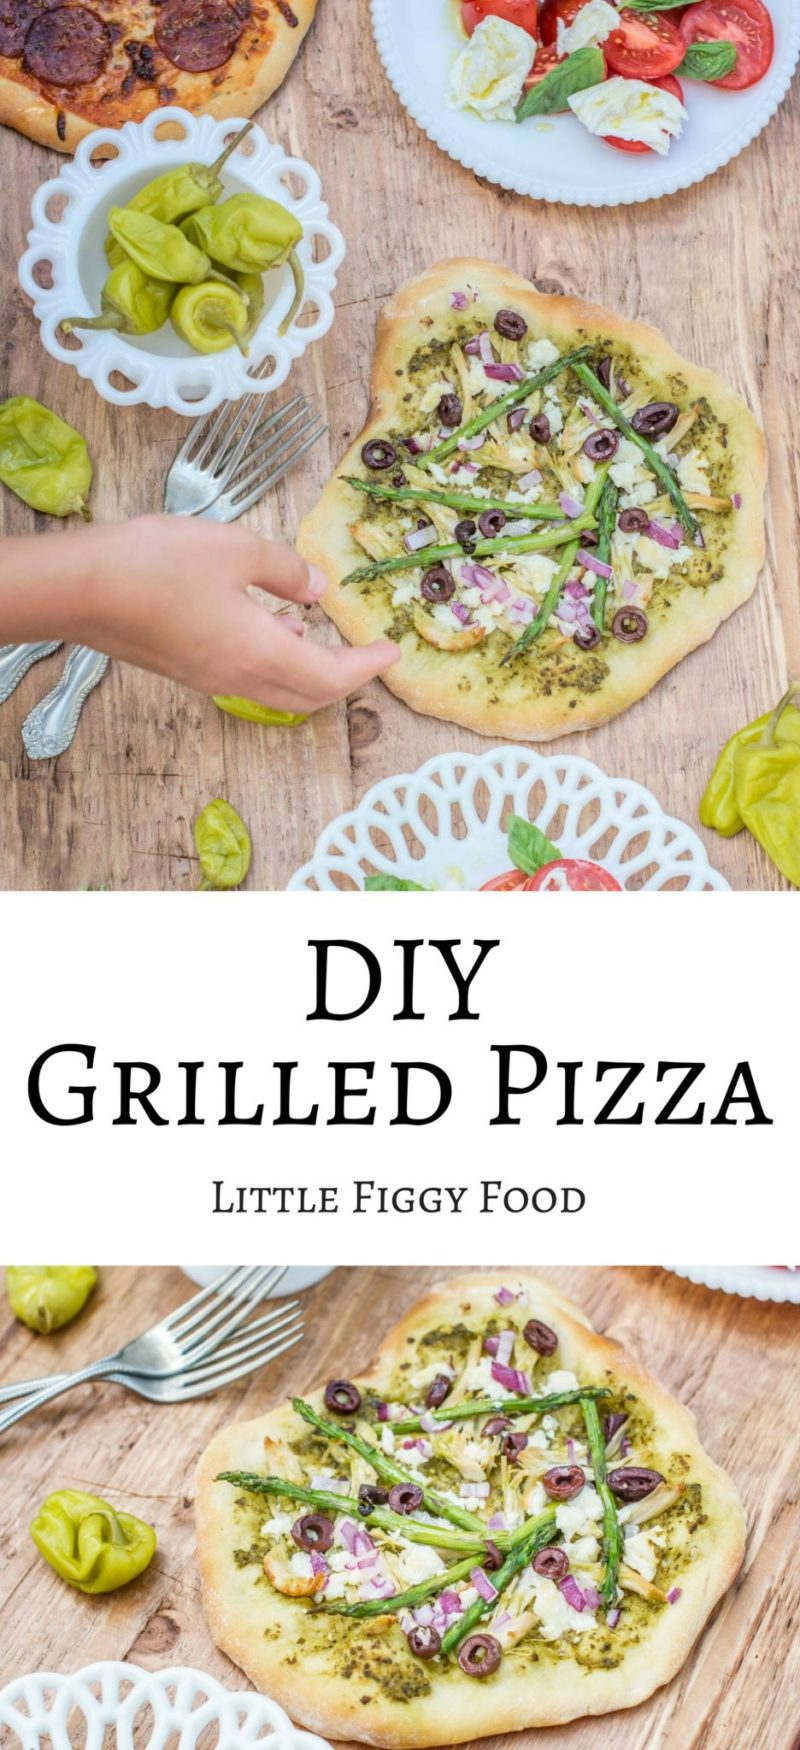 Make your grilled pizza your way then bake it up on the grill or in a wood fire pizza oven for the best pizza you'll ever enjoy! Recipe at Little Figgy Food. #ad